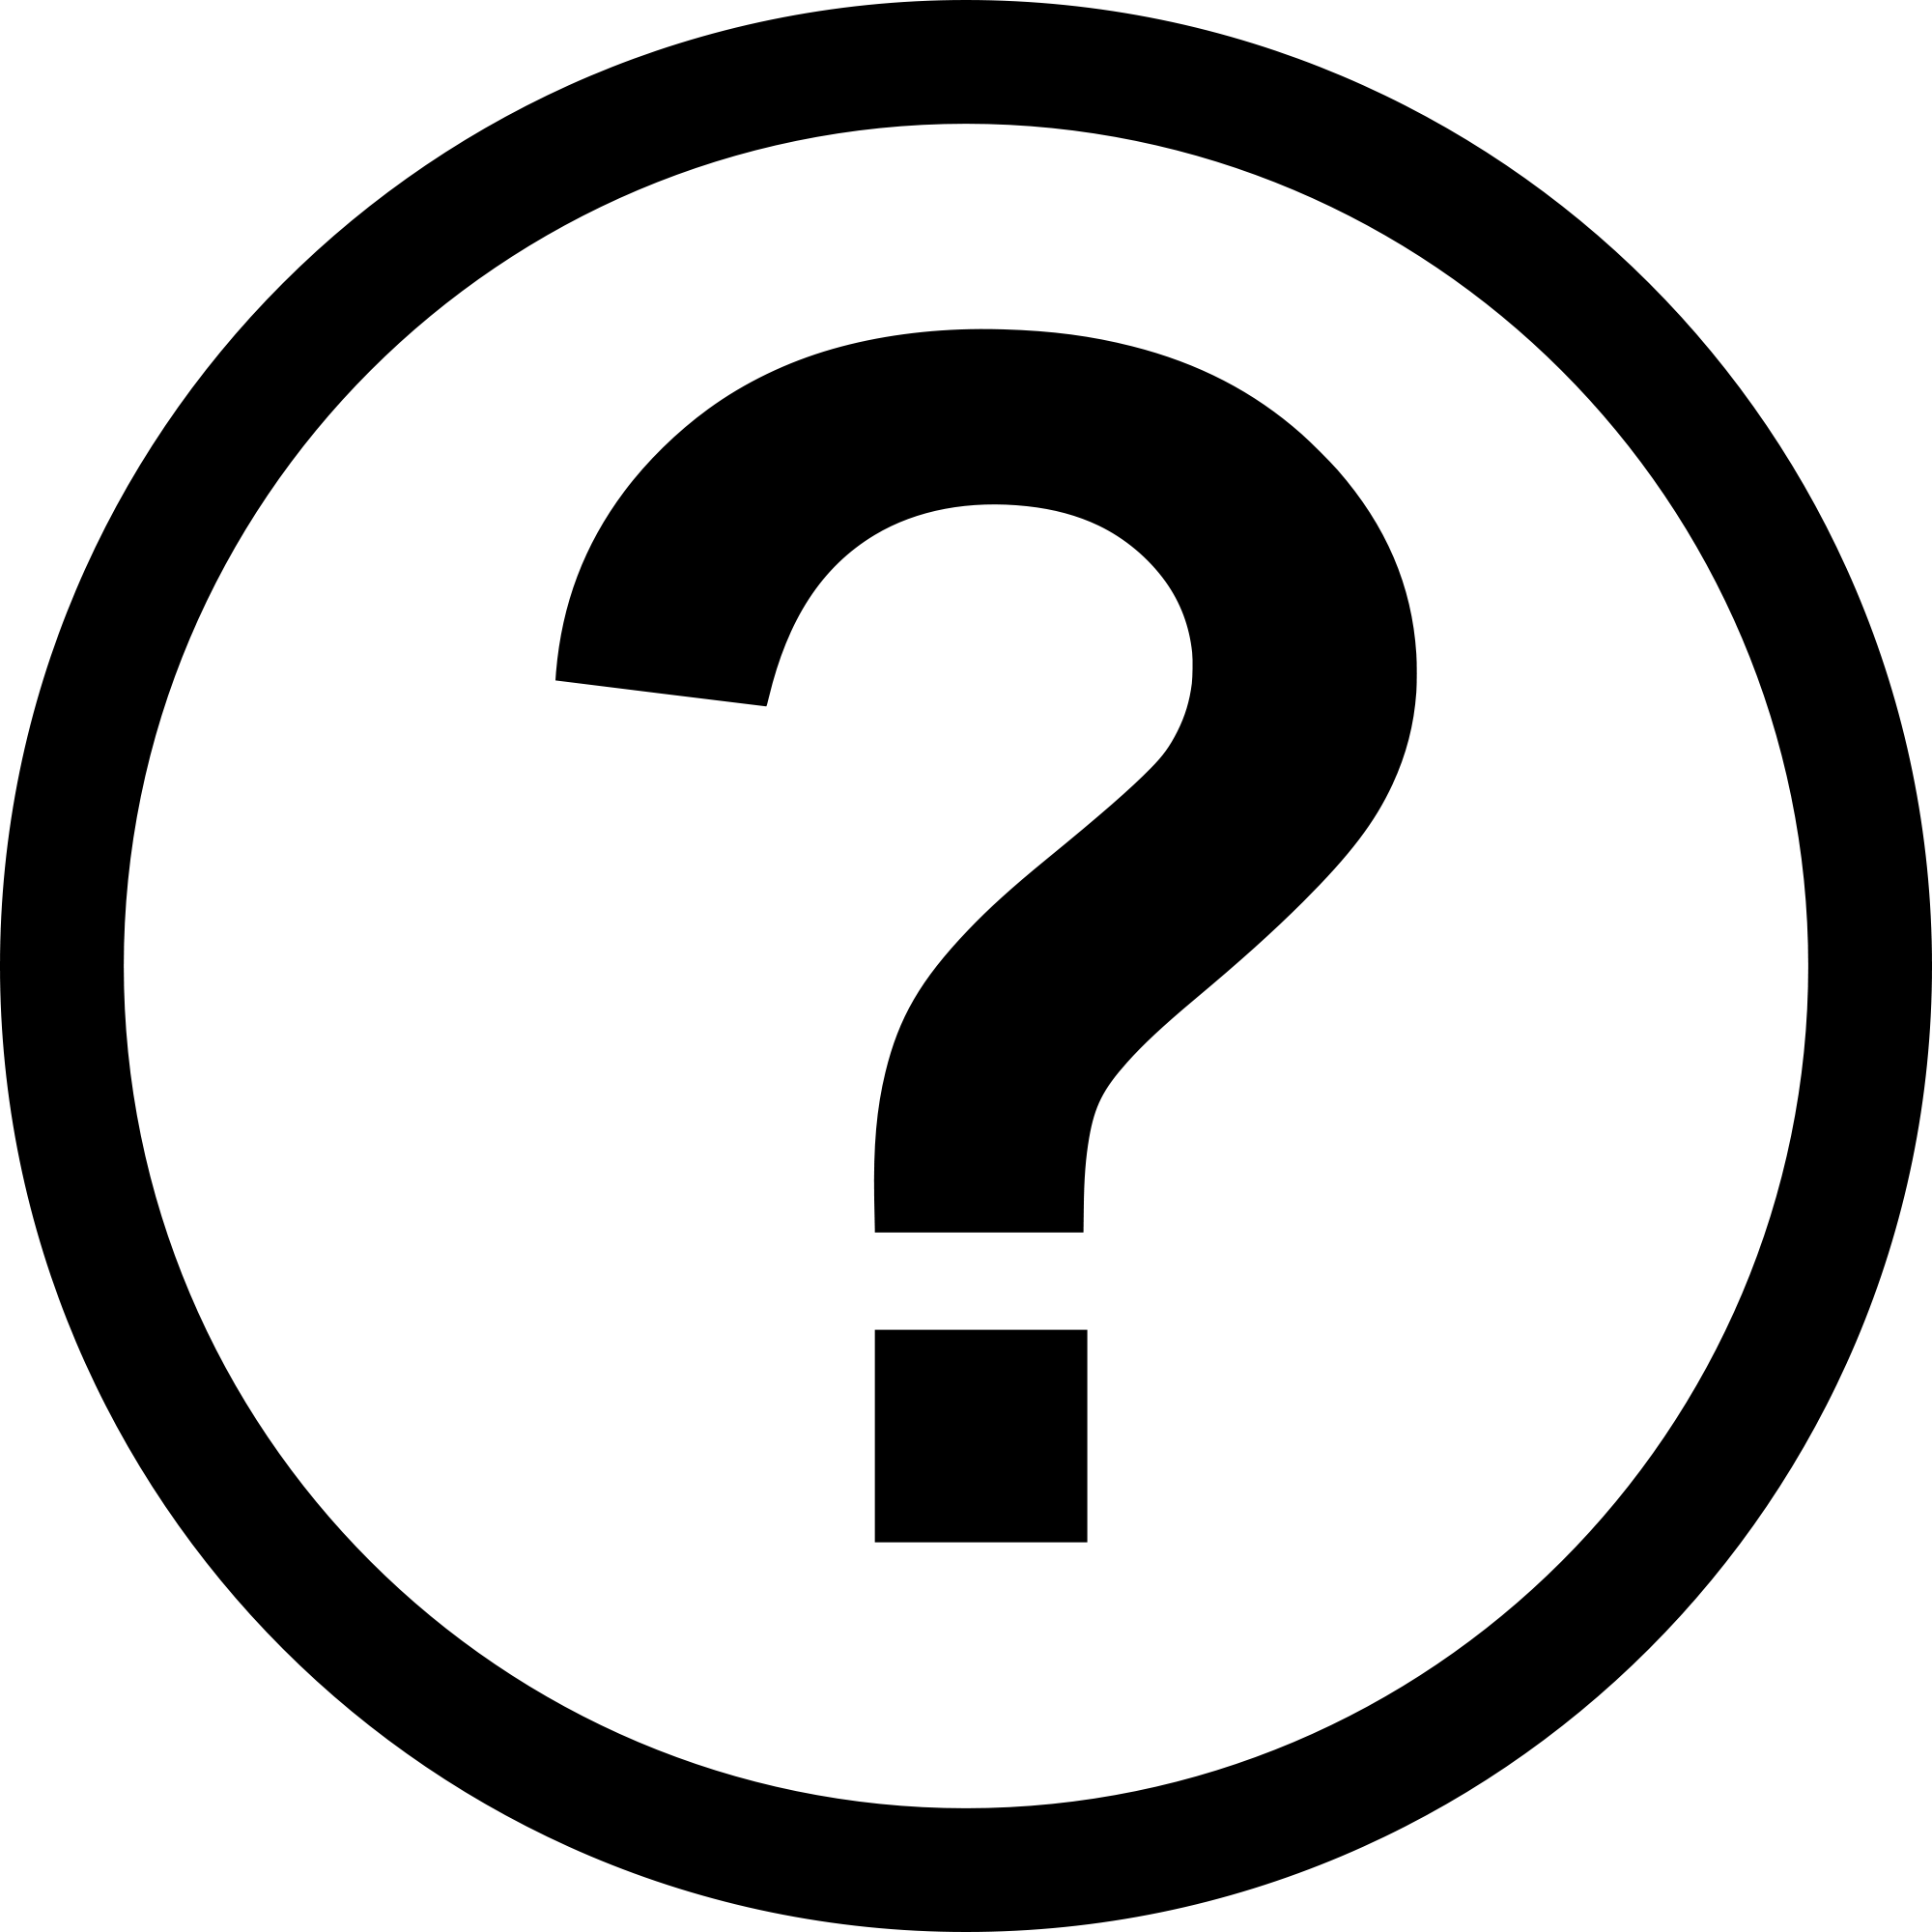 Question Mark svg #4, Download drawings